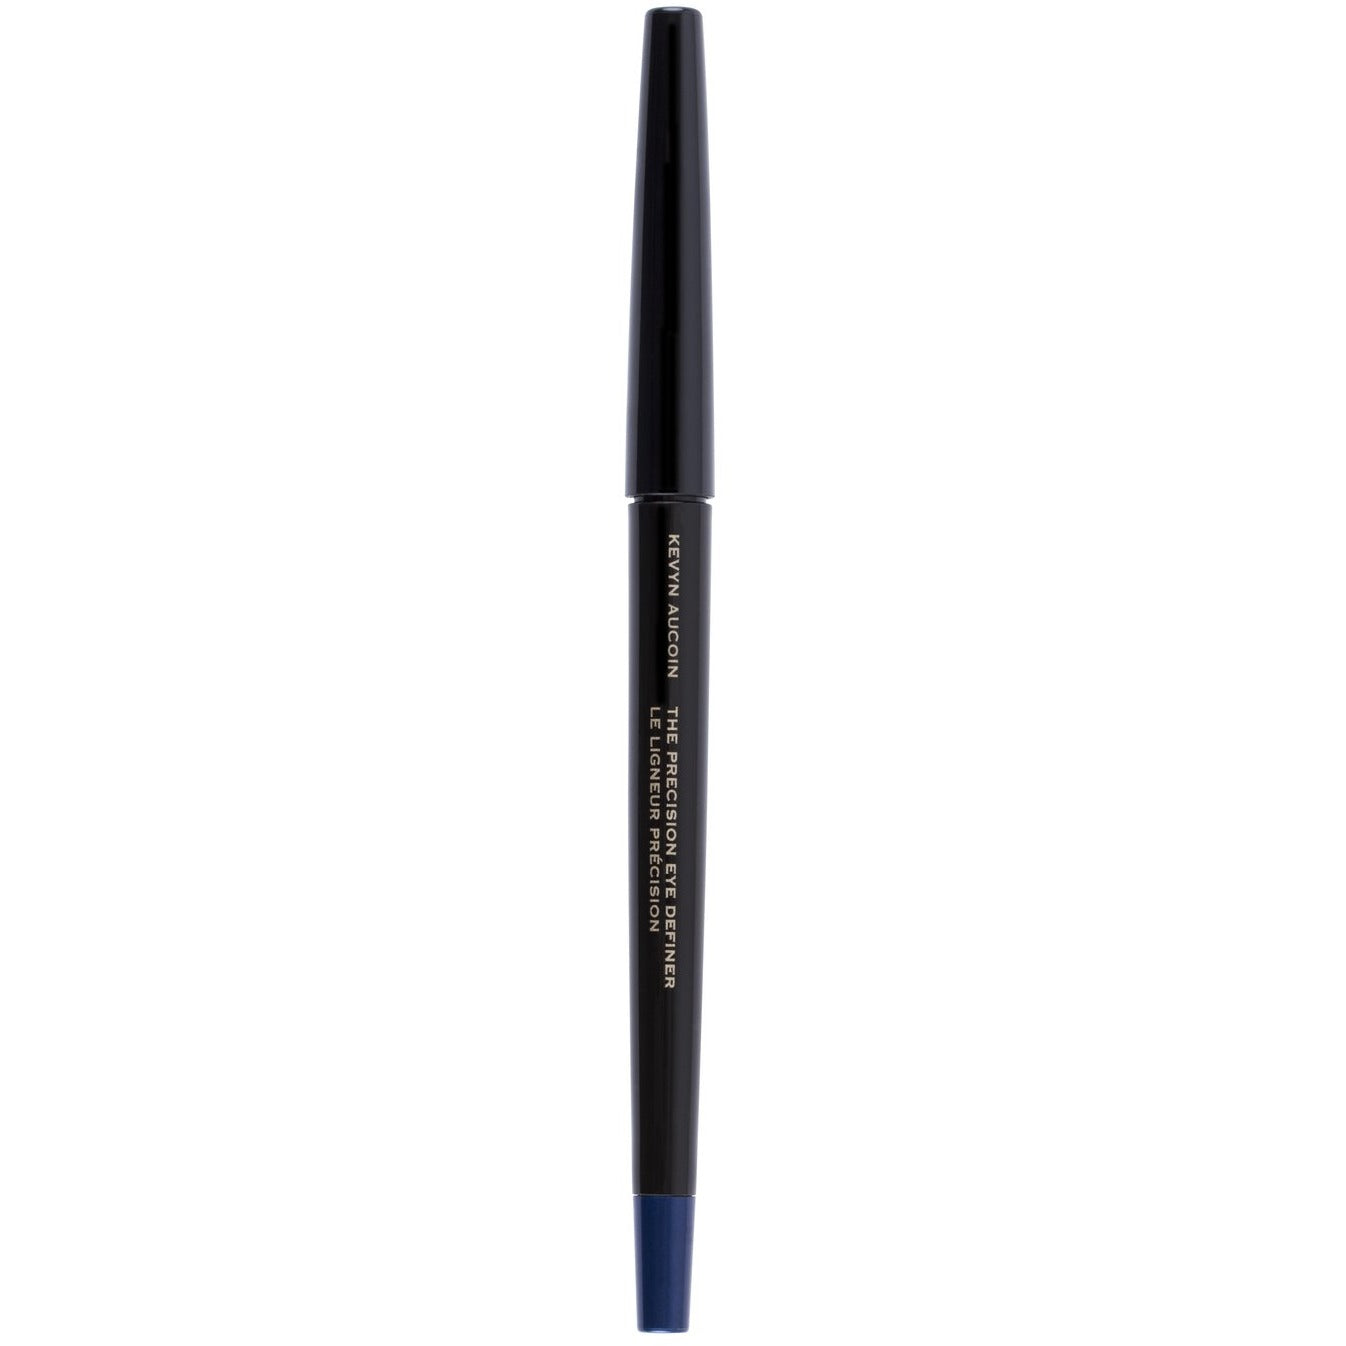 The Precision Eye Definer - Cadence